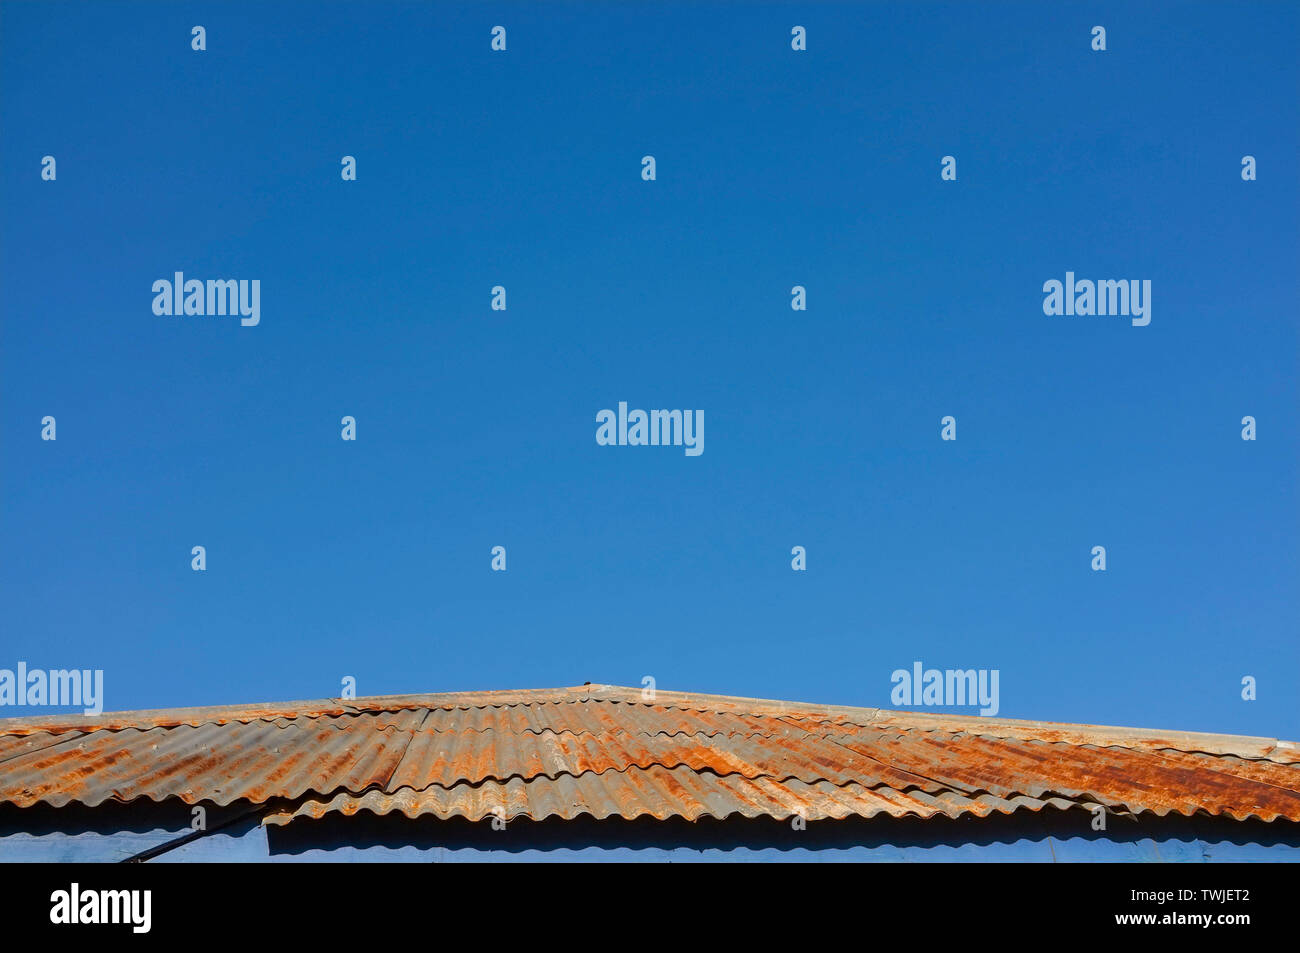 tin-roof-made-of-corrugated-iron-TWJET2.